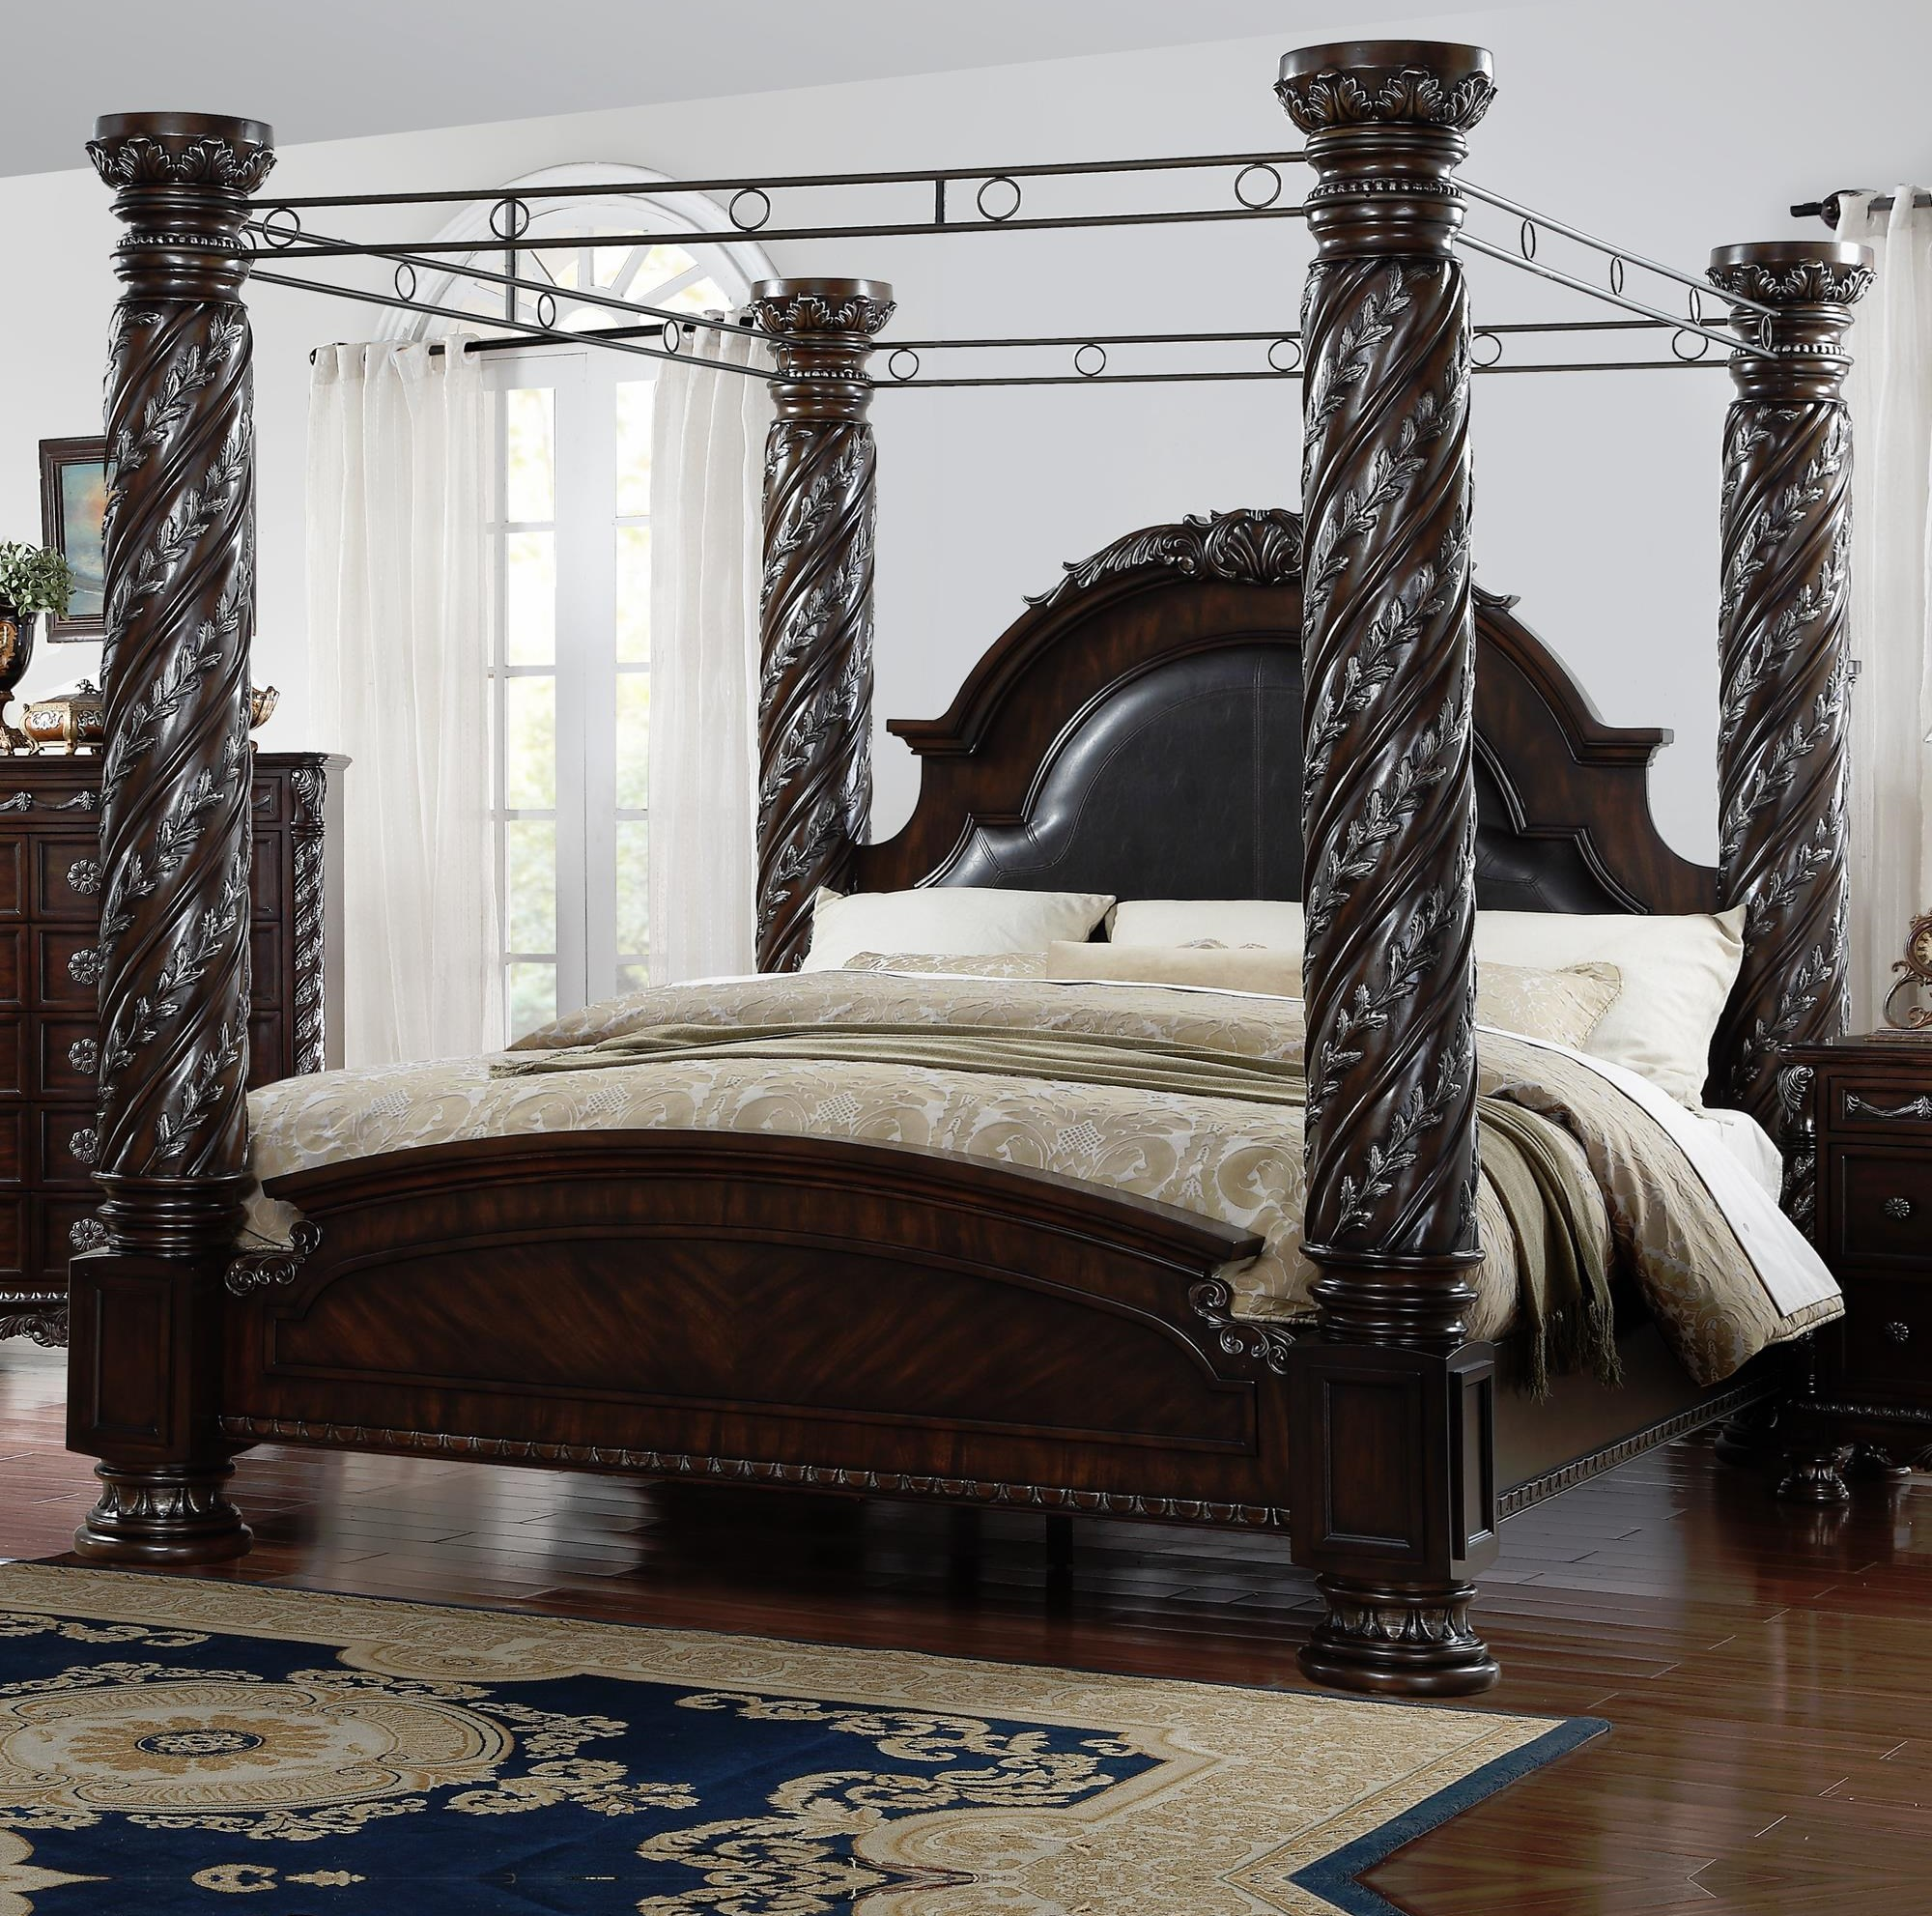 Lee Furniture La Rochelle King Canopy Bed Royal Furniture Canopy